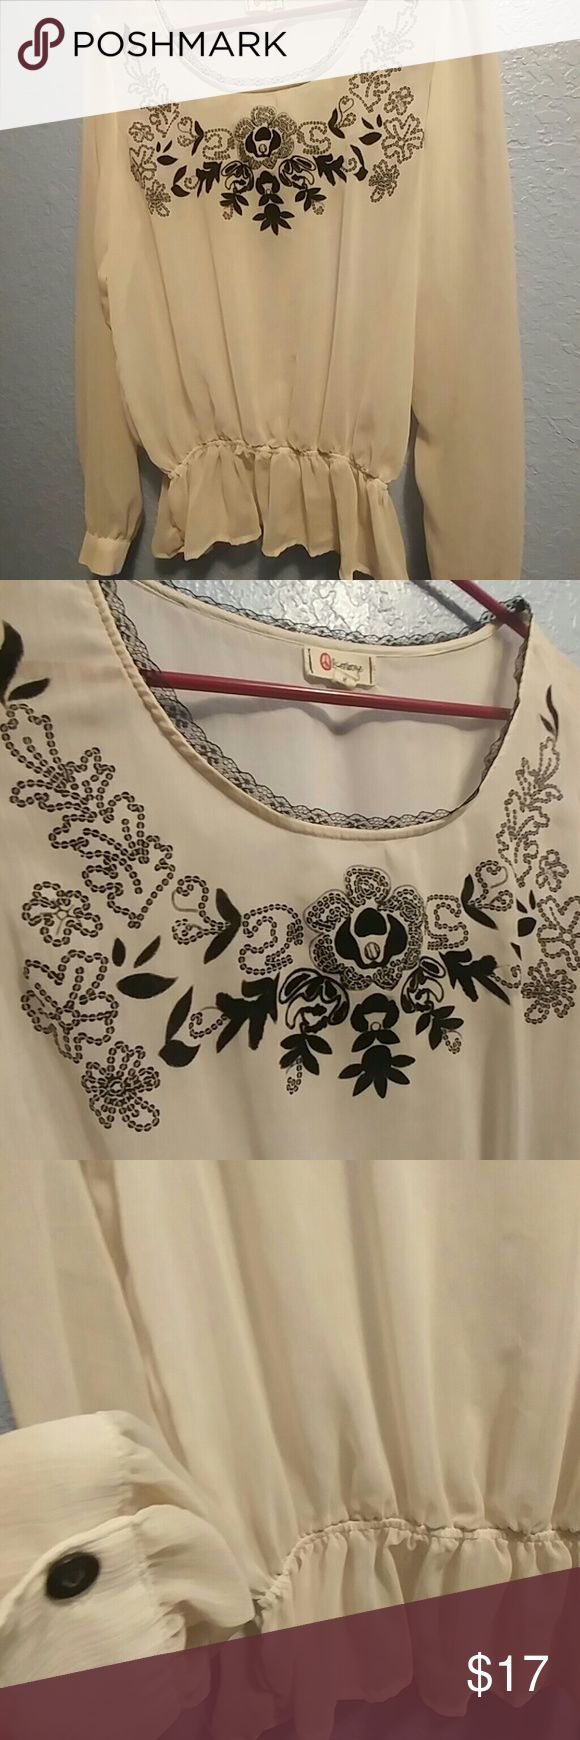 Pretty Sheer Top Sheer cream long sleeve top with black designs on the chest and lace on the neckline. Scrunch around the waist with some flow below. Black buttons on the cuffs located on each arm. Great lighly worn condition. Size medium Tops Blouses